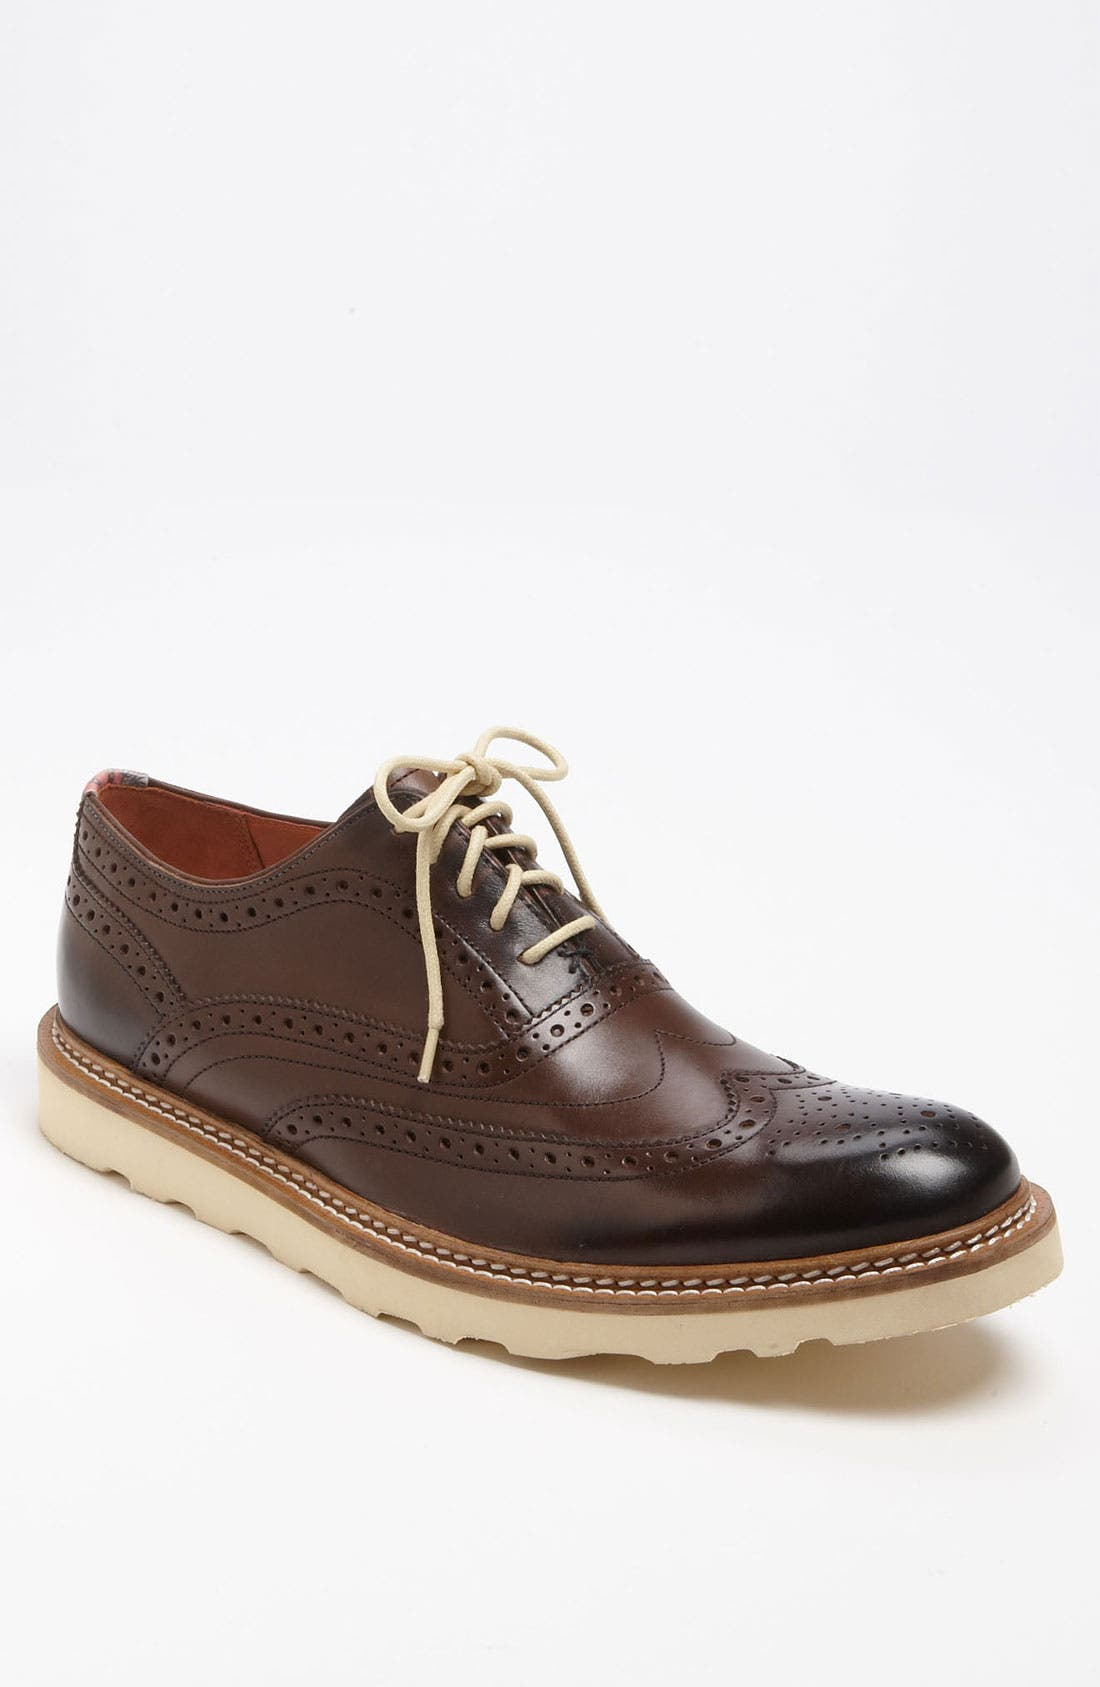 Main Image - Ted Baker London 'Gonys' Wingtip Oxford